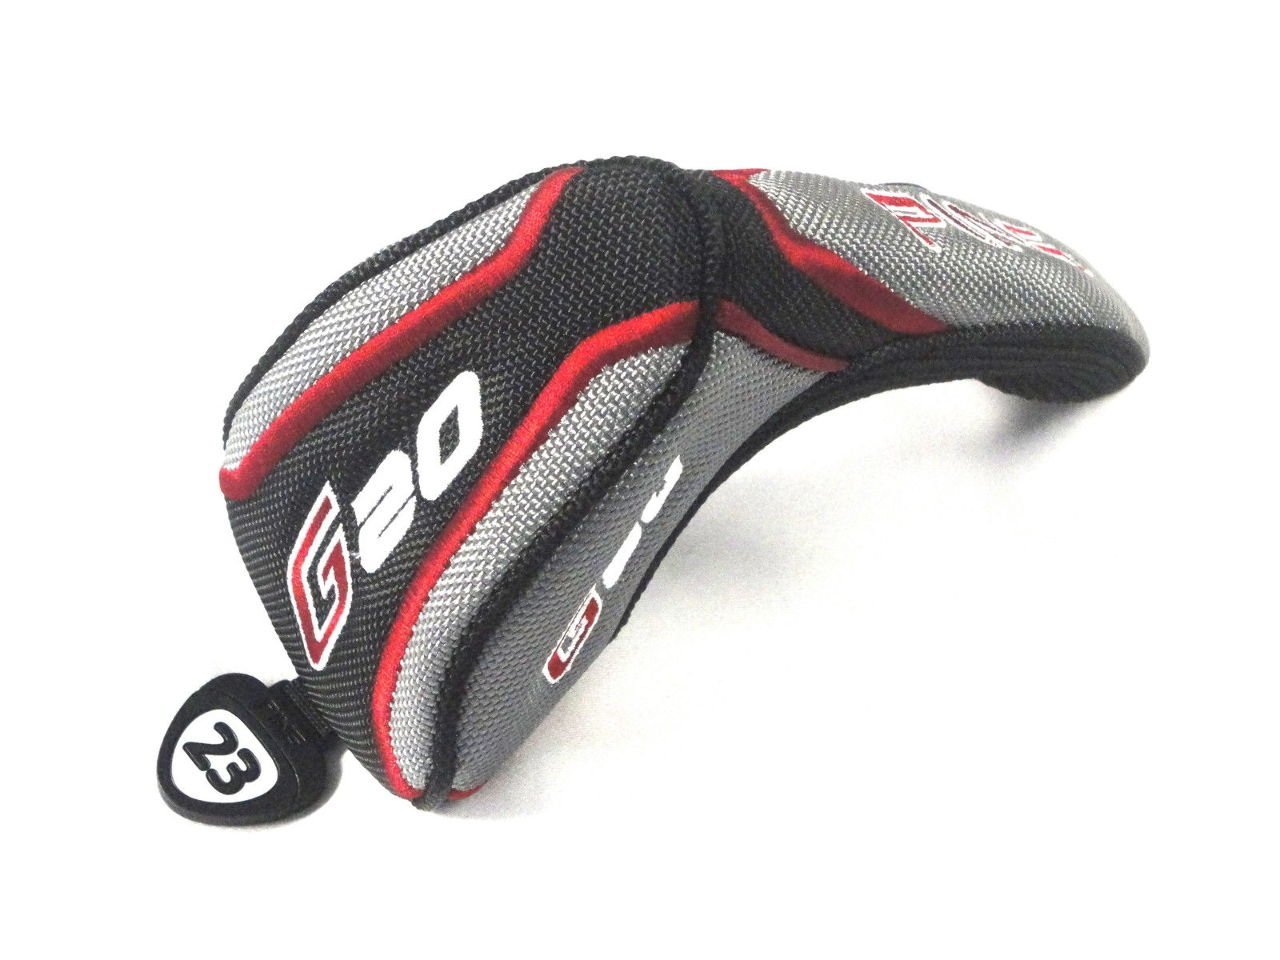 NEW PING G20 Hybrid 23* Utility Silver/Black/Red Headcover